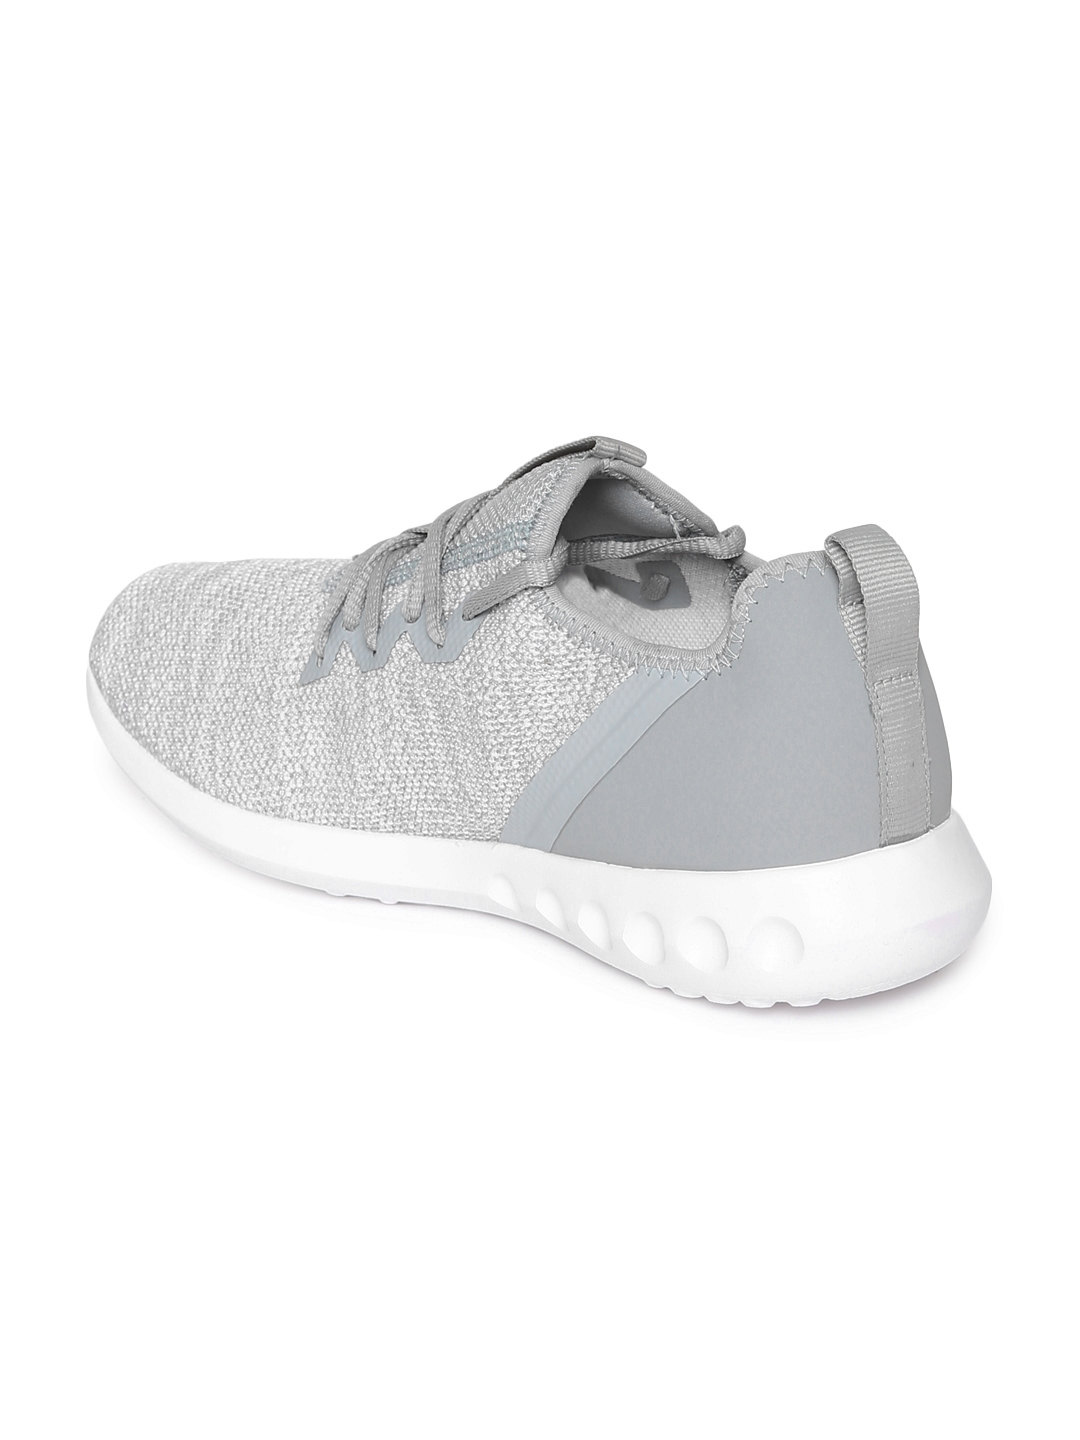 ff6ef58538 Buy Puma Women Carson 2 X Knit Running Shoes - Sports Shoes for ...